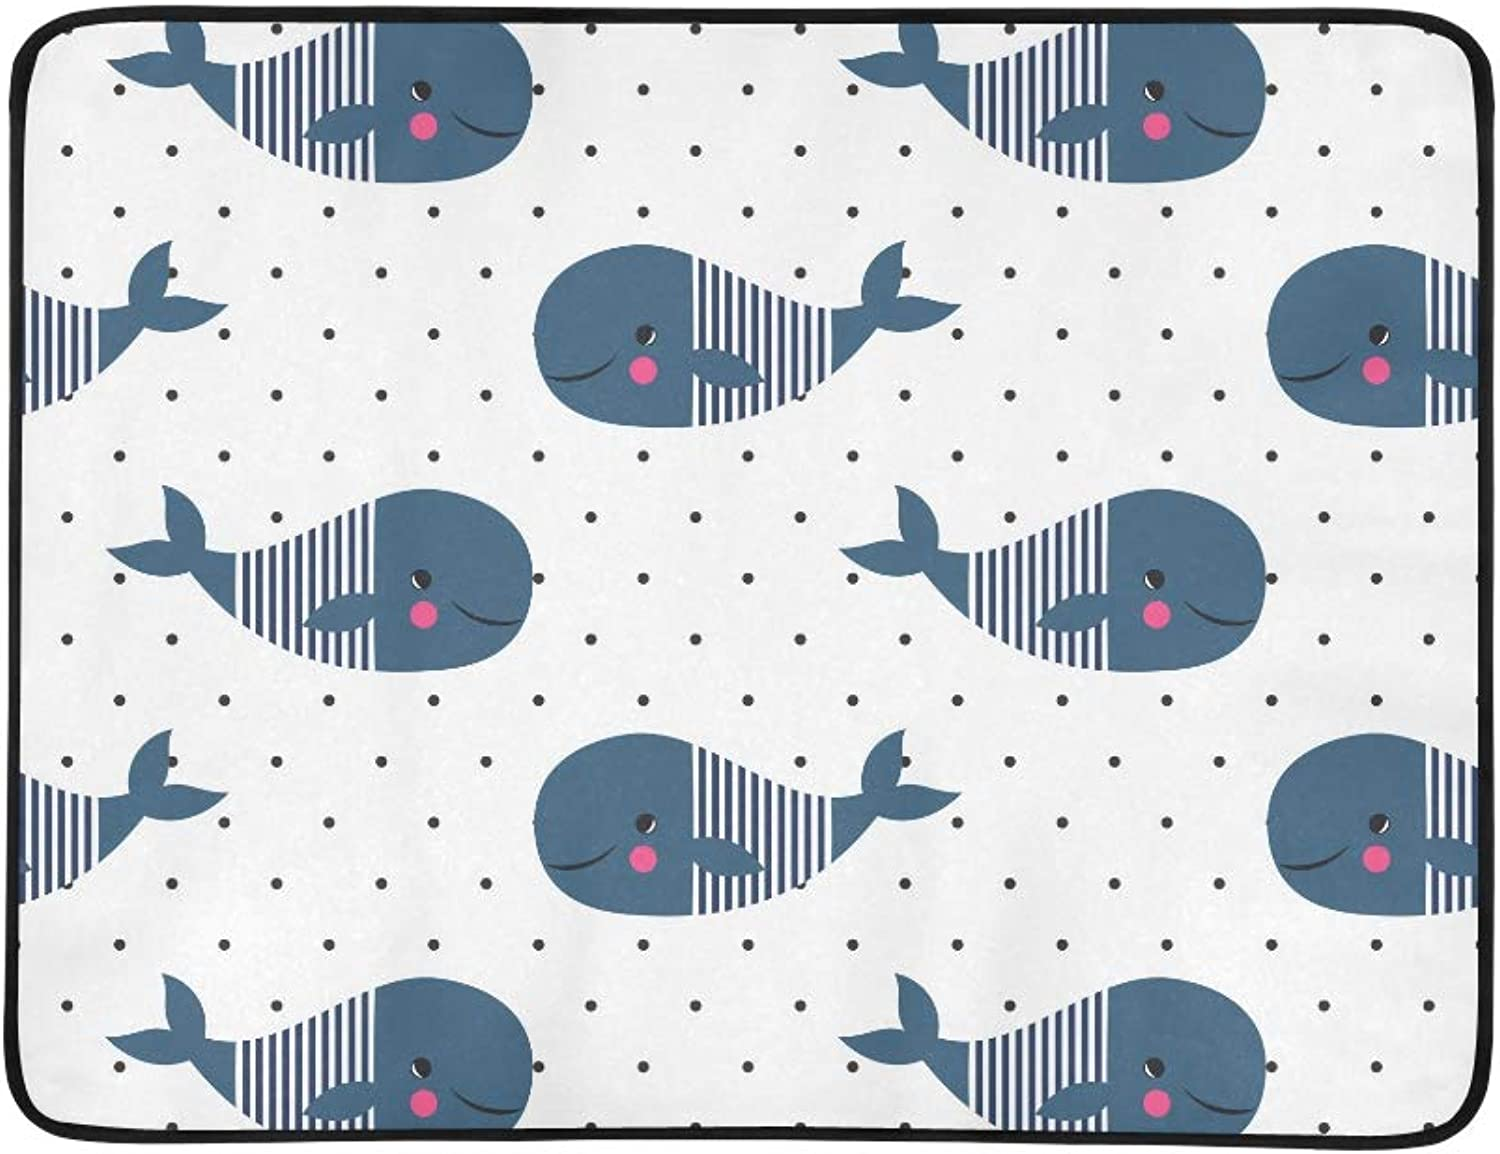 Cute Cartoon Whale On Polka Dots Pattern Portable and Foldable Blanket Mat 60x78 Inch Handy Mat for Camping Picnic Beach Indoor Outdoor Travel